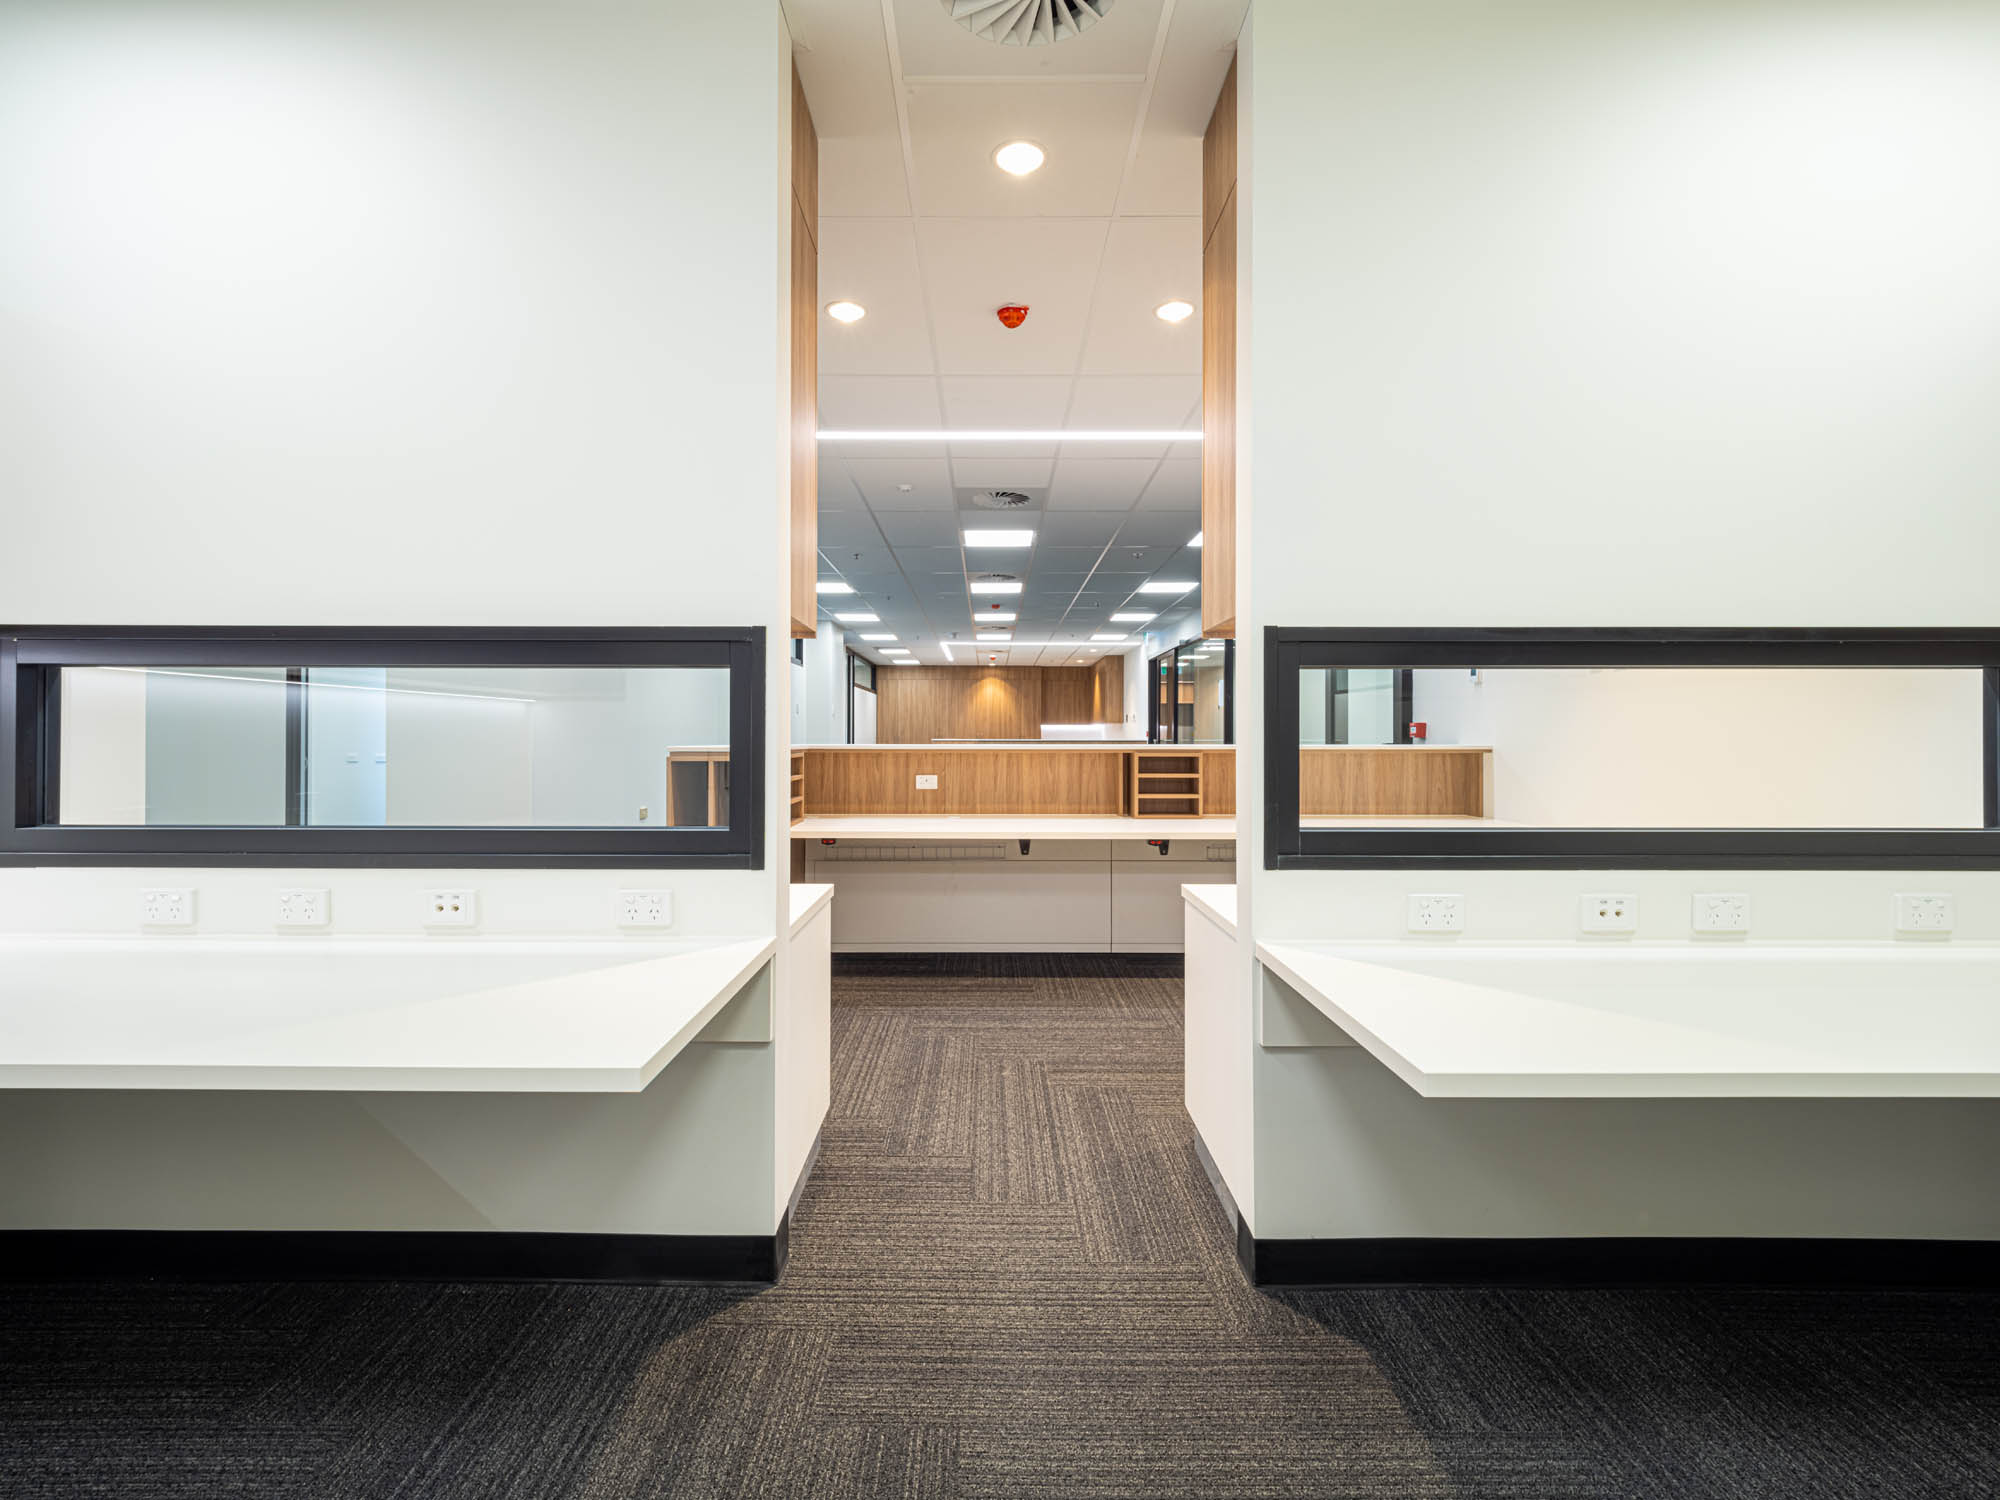 calvary adelaide hospital healthcare aged care fitout construction medical